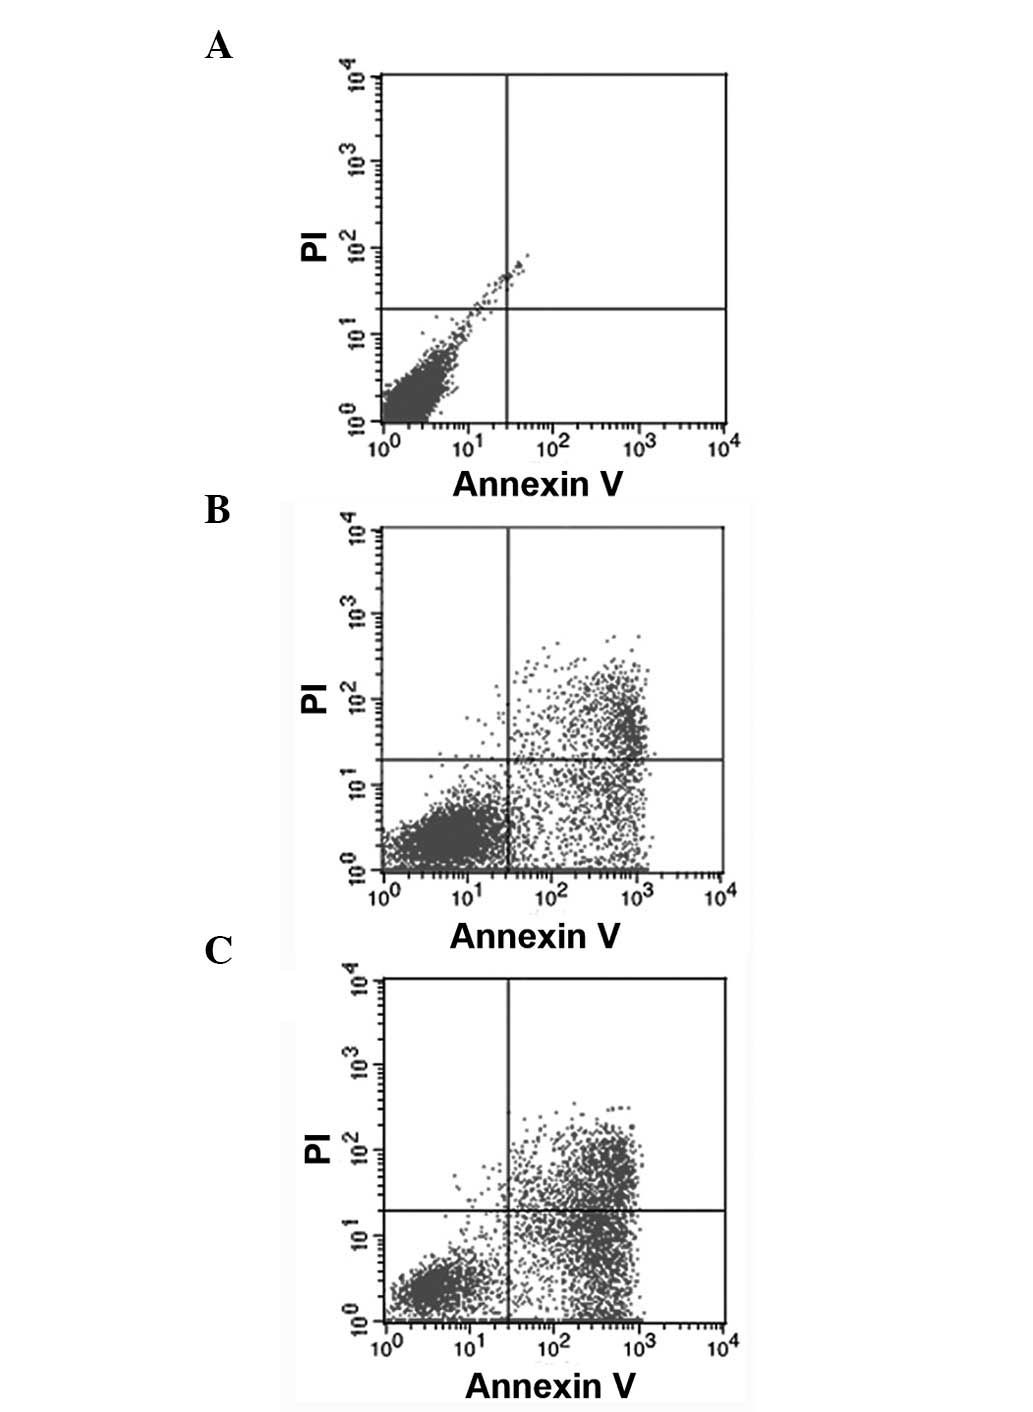 Tetra Arsenic Tetra Sulfide Induces Cell Cycle Arrest And